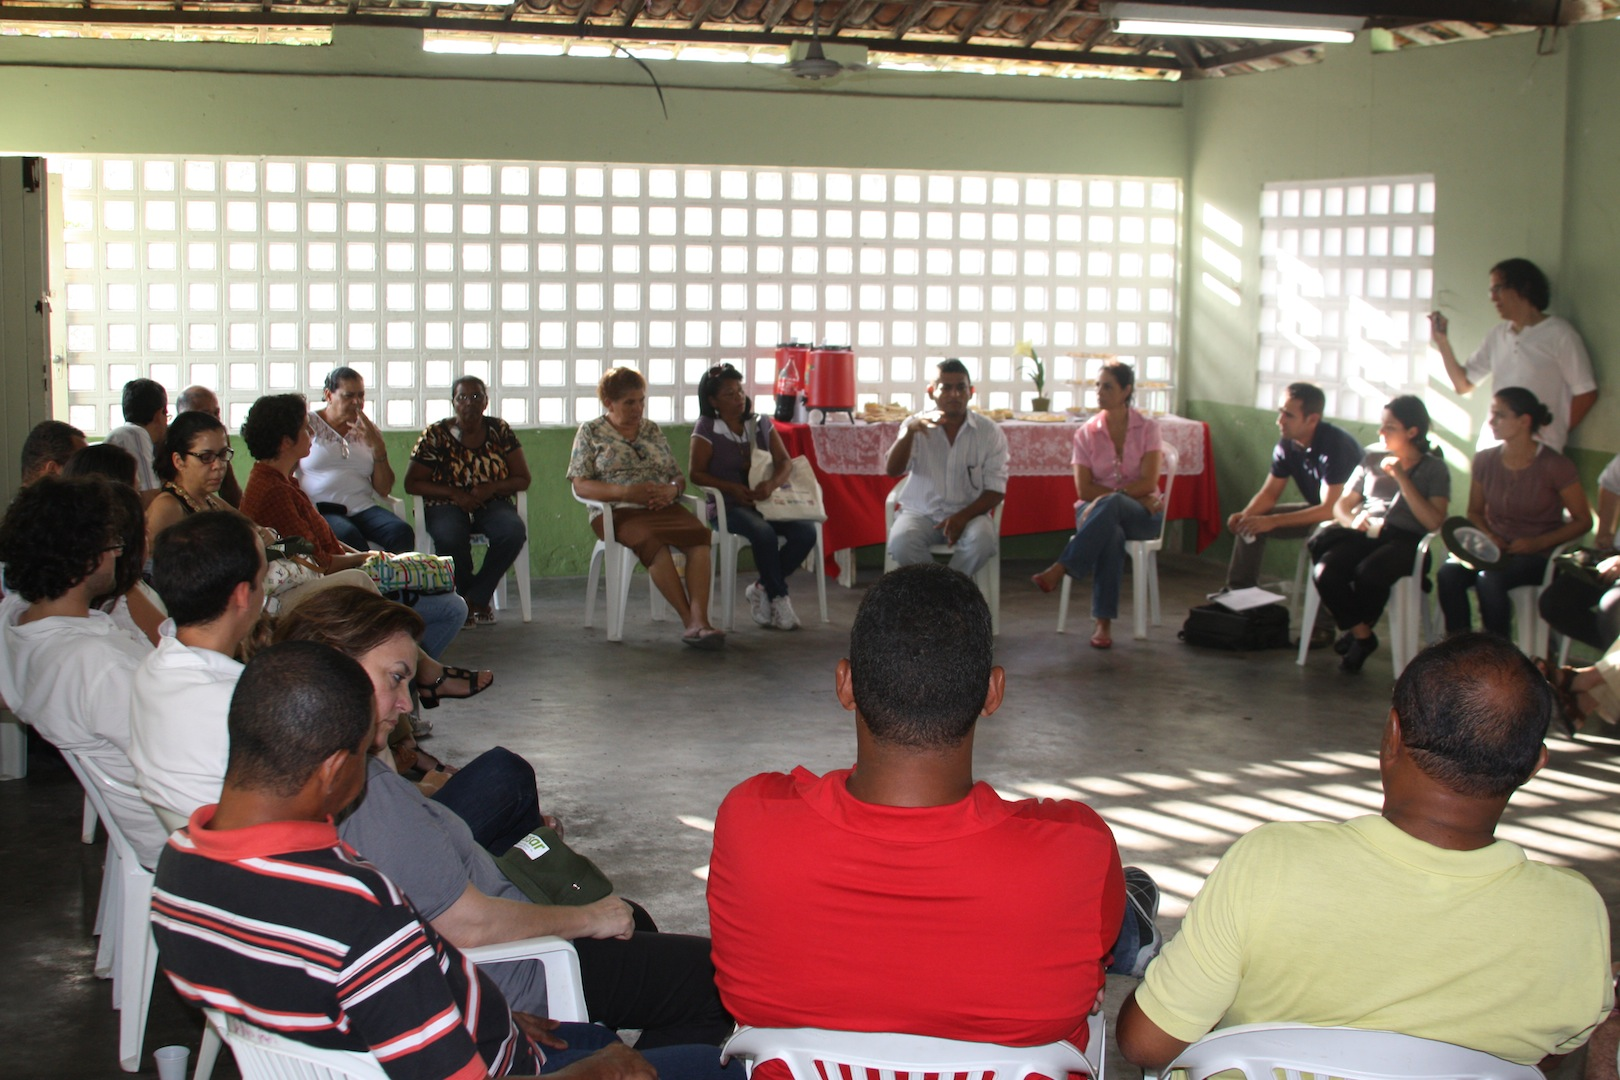 Visit to Mustardinha 8, meeting with the community members